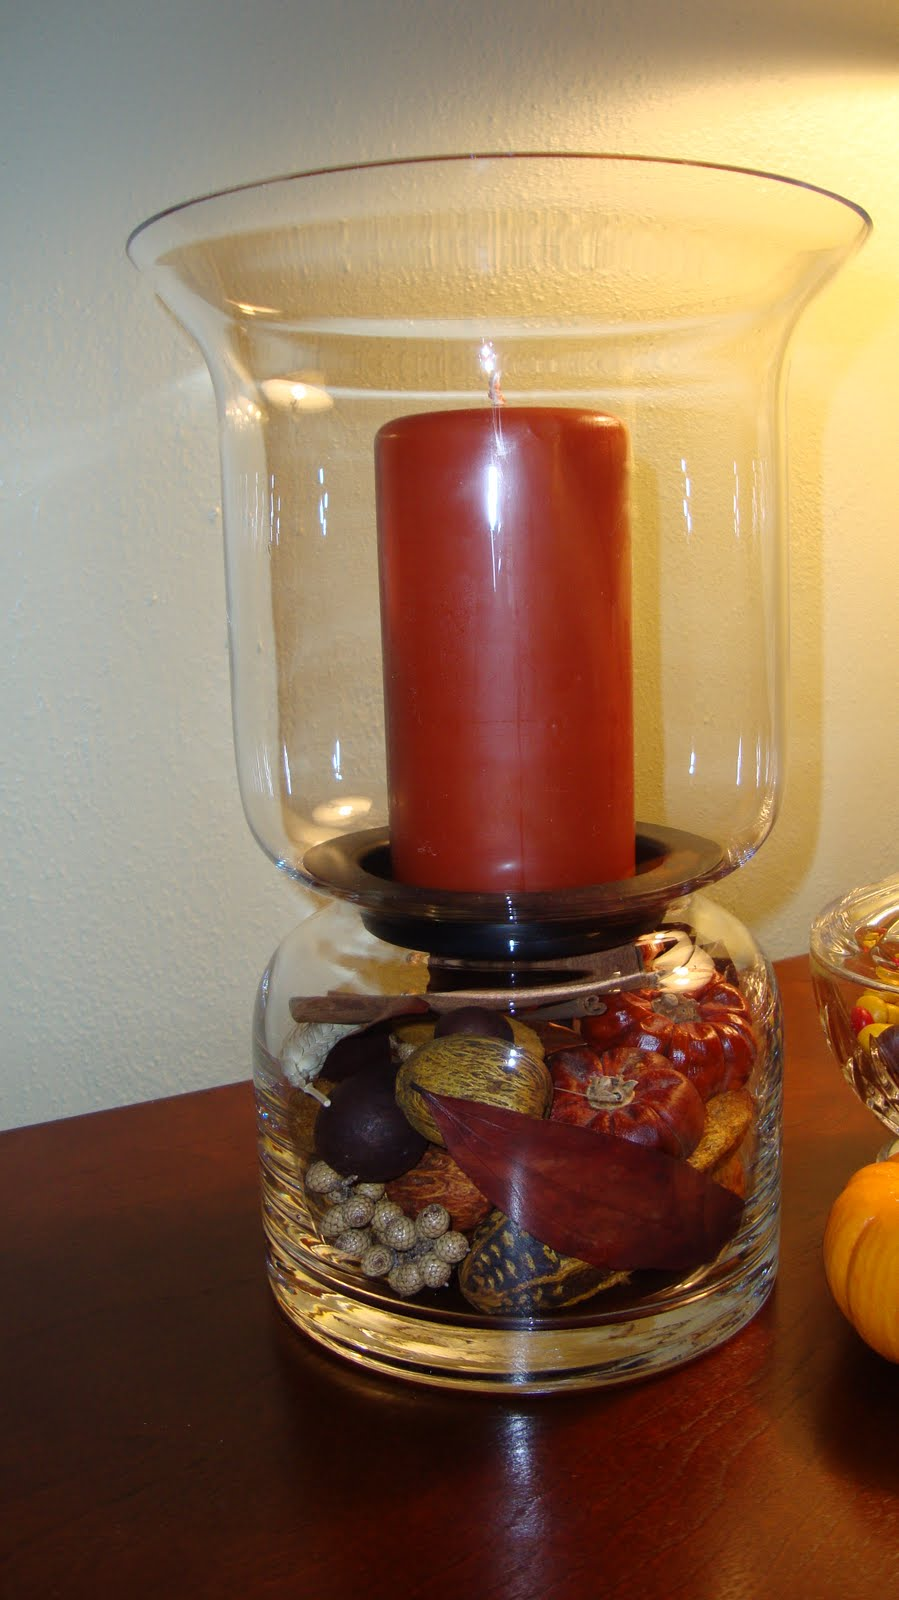 Jk homestead autumn decor on the coffee table we took a leaf plate and put in it 2 fall candles and a small bundle of sticks taken from the vase filler used in the candle holder reviewsmspy